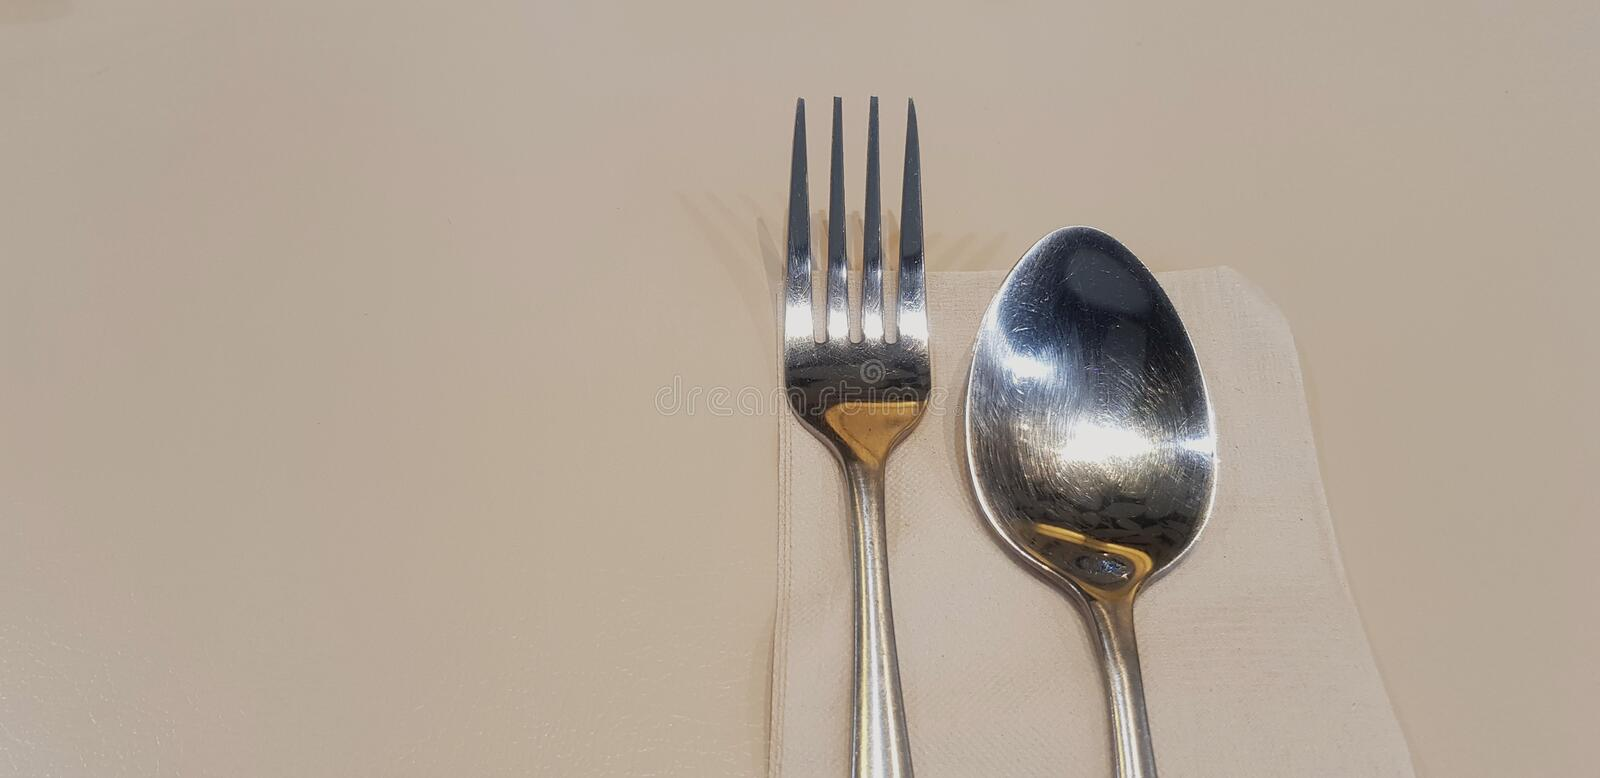 Stainless steel fork and spoon on brown napkin or towel paper setting on dinner table with copy space. Preparation, Utensil, Dining table and Shape of object stock images